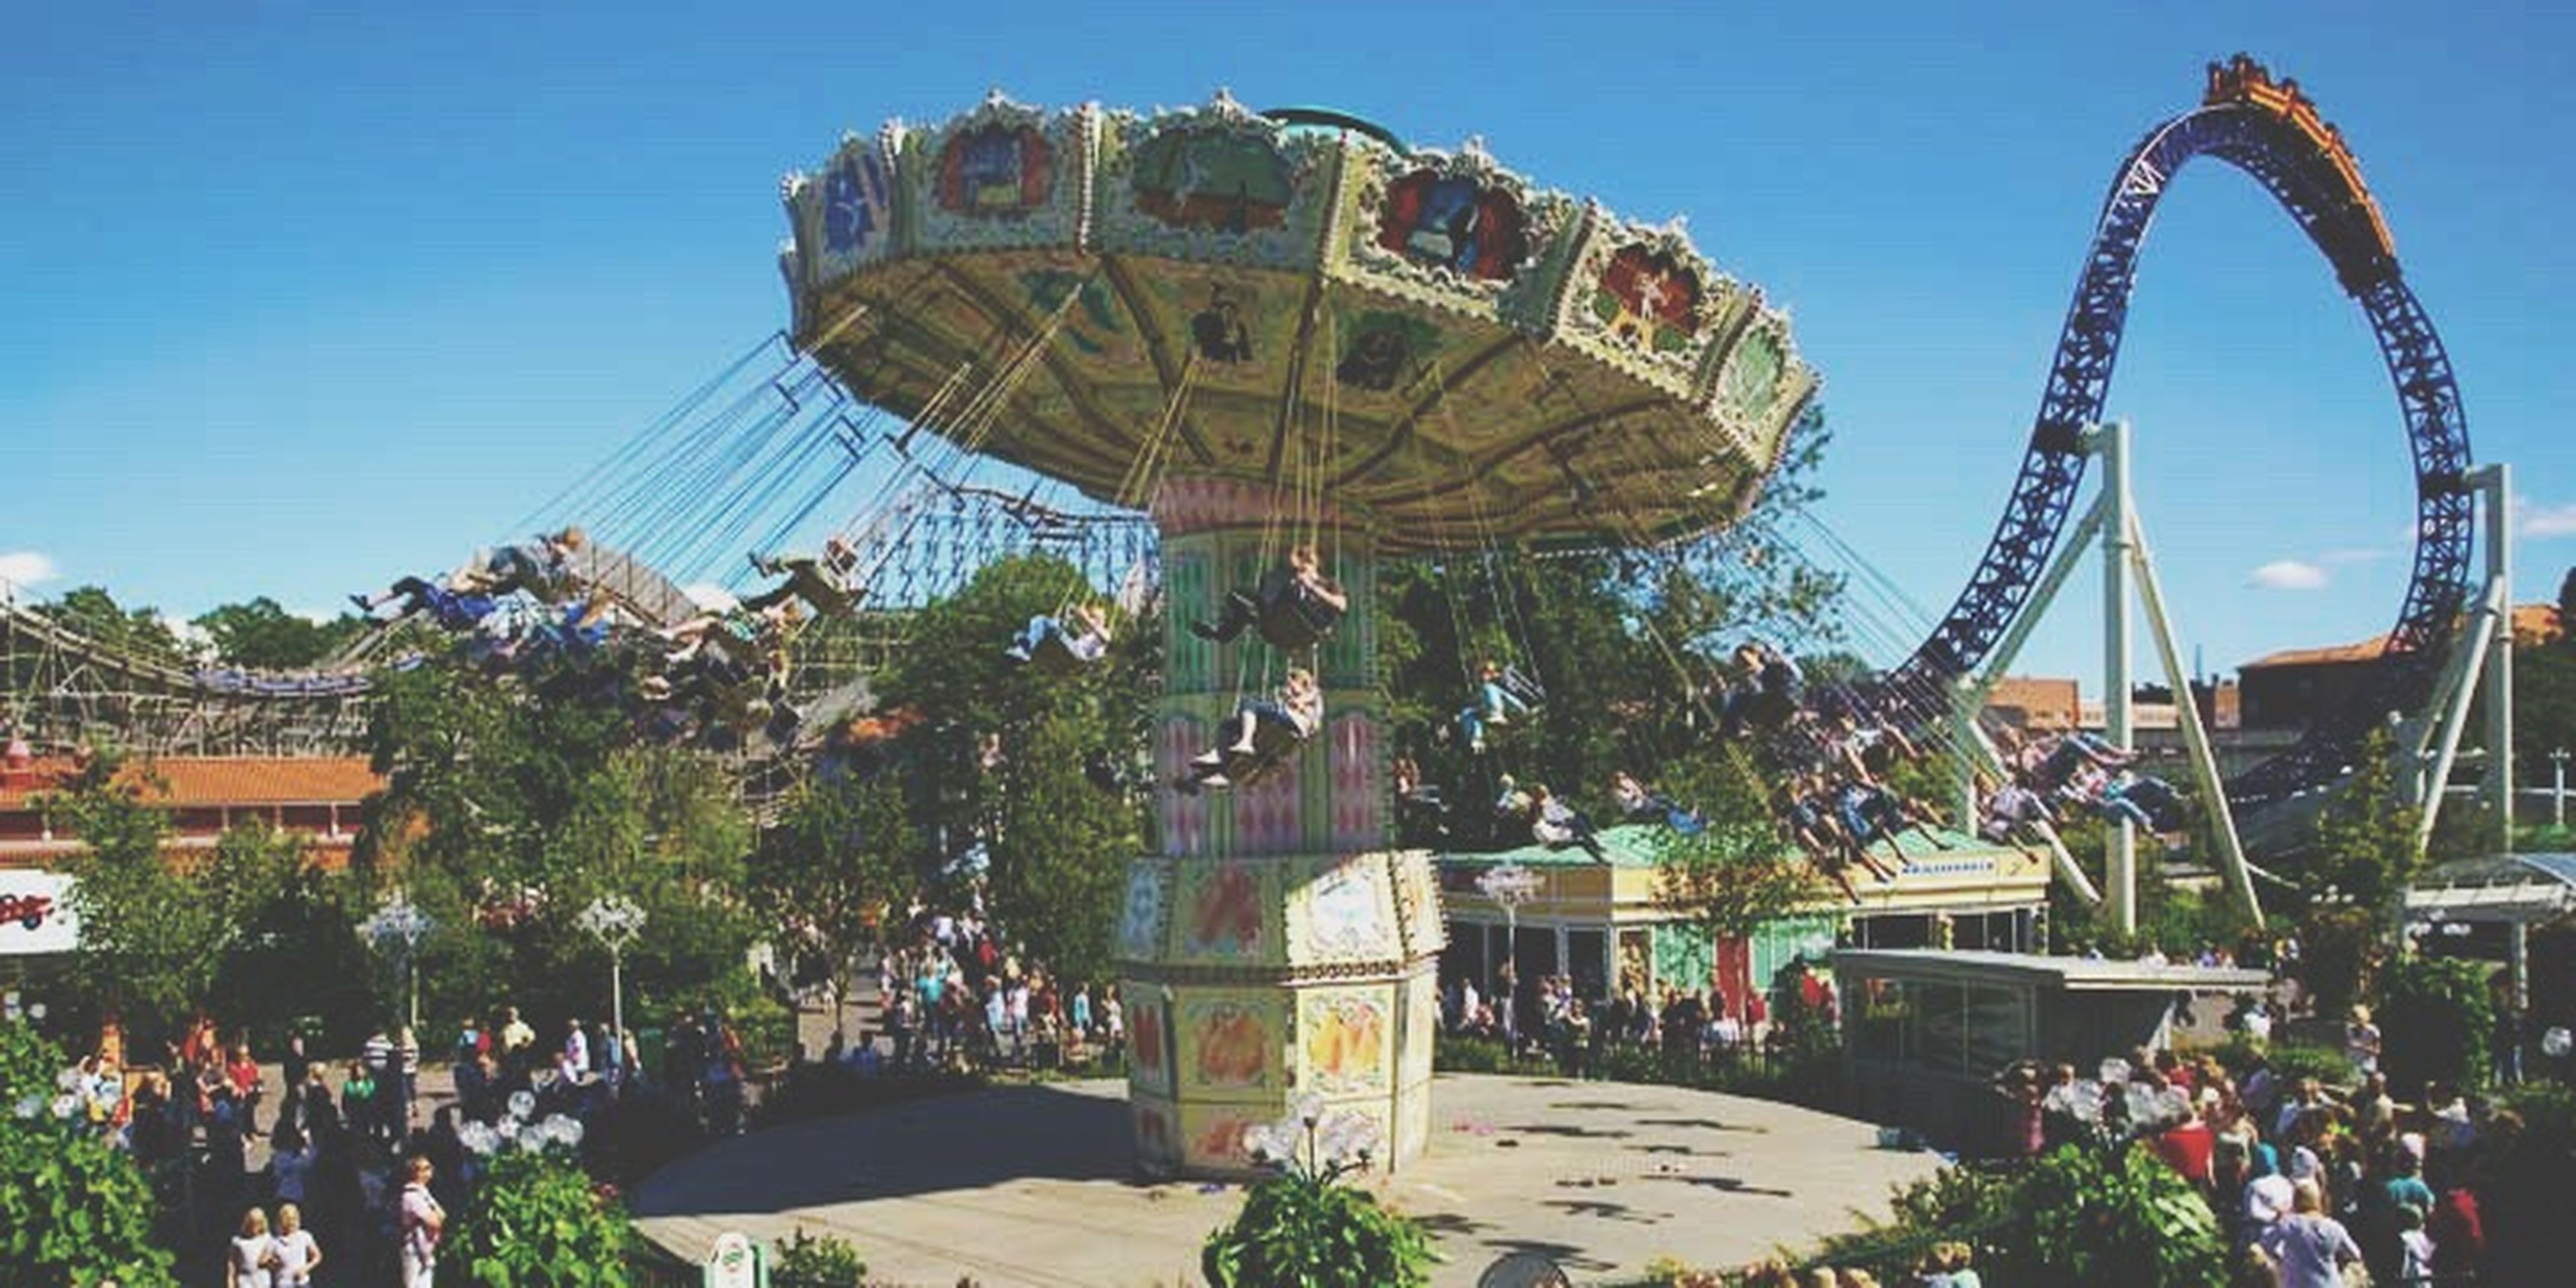 amusement park, ferris wheel, amusement park ride, arts culture and entertainment, built structure, tree, architecture, clear sky, blue, incidental people, building exterior, sky, travel destinations, tourism, leisure activity, low angle view, sunlight, park - man made space, outdoors, day